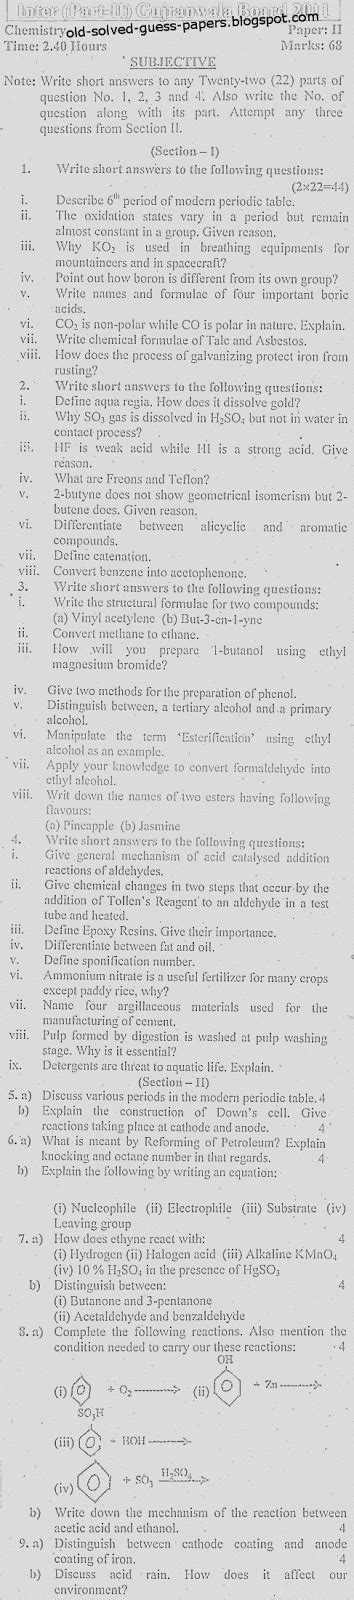 paper pattern gujranwala board f sc chemistry part two gujranwala board old solved and